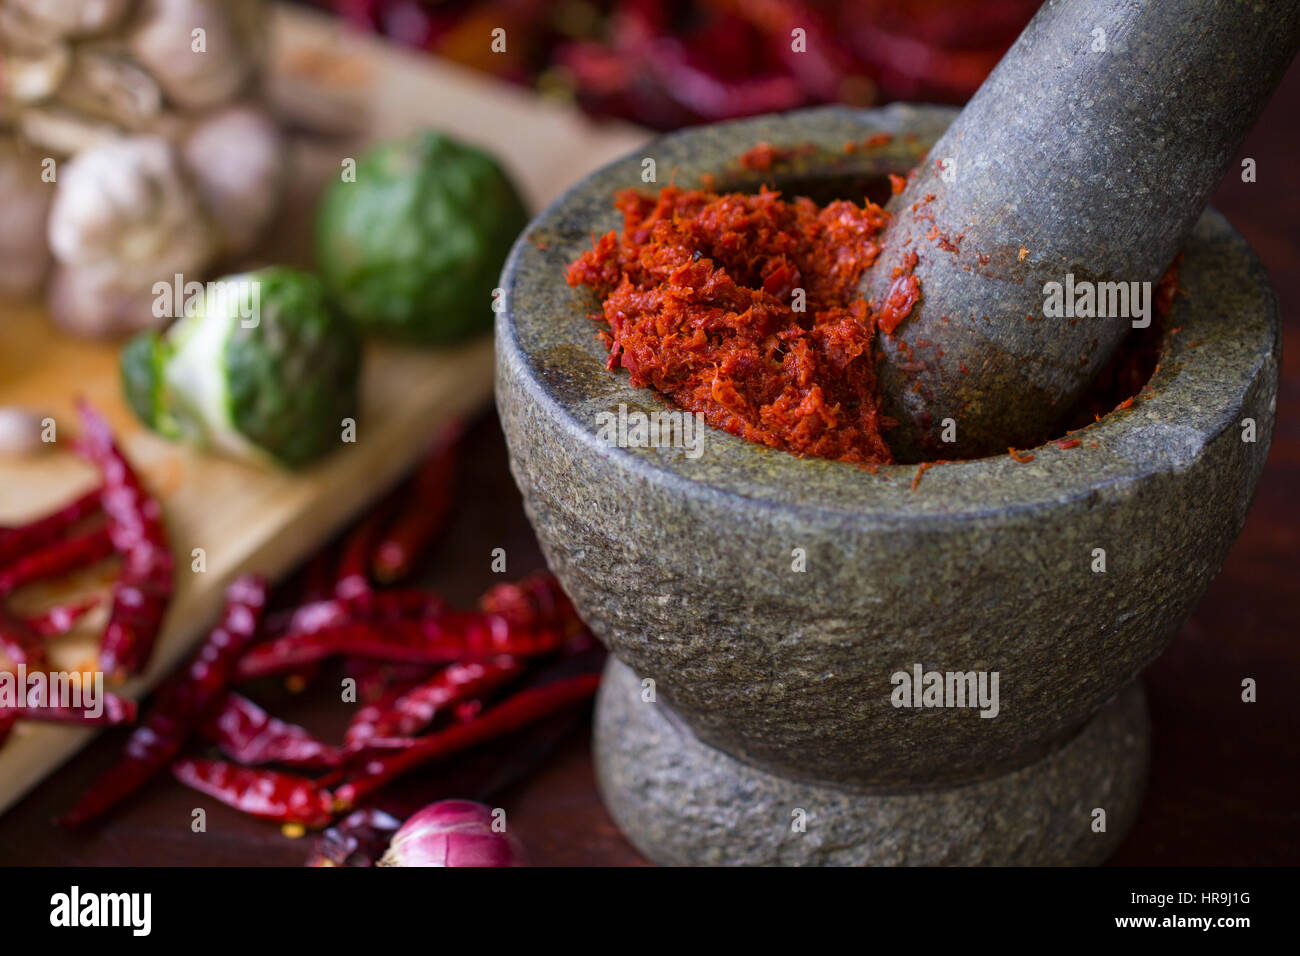 Chili paste in Thai cooking - Stock Image